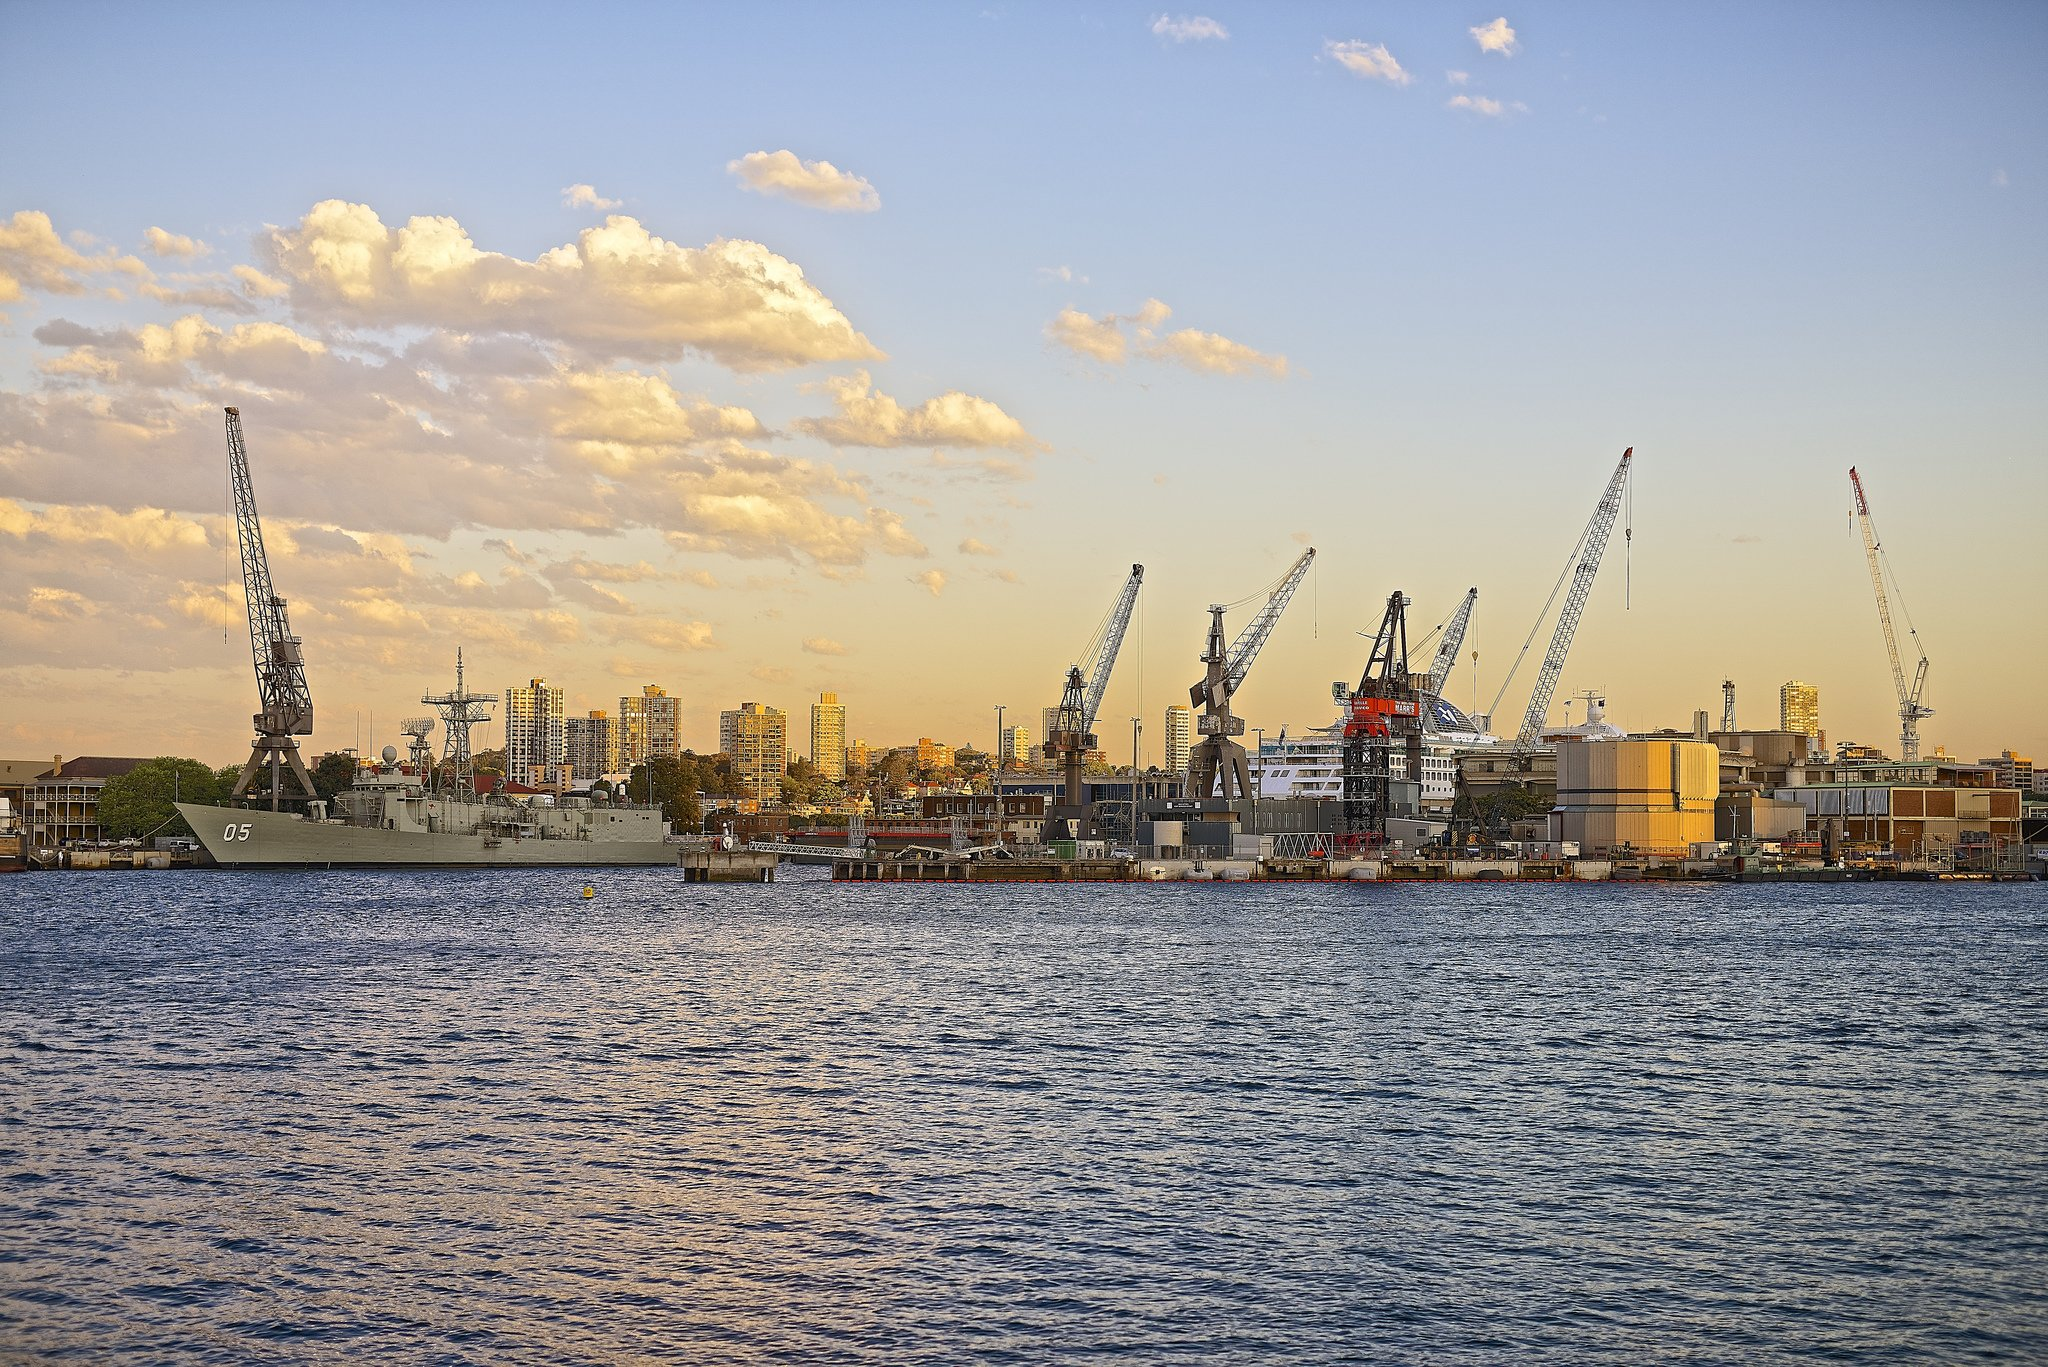 Muller Partnership is pleased to be providing Lendlease and PSG Holdings with cost planning services on both Stages 1 & 2 of the Garden Island Defence Precinct Critical Infrastructure Recovery Project.